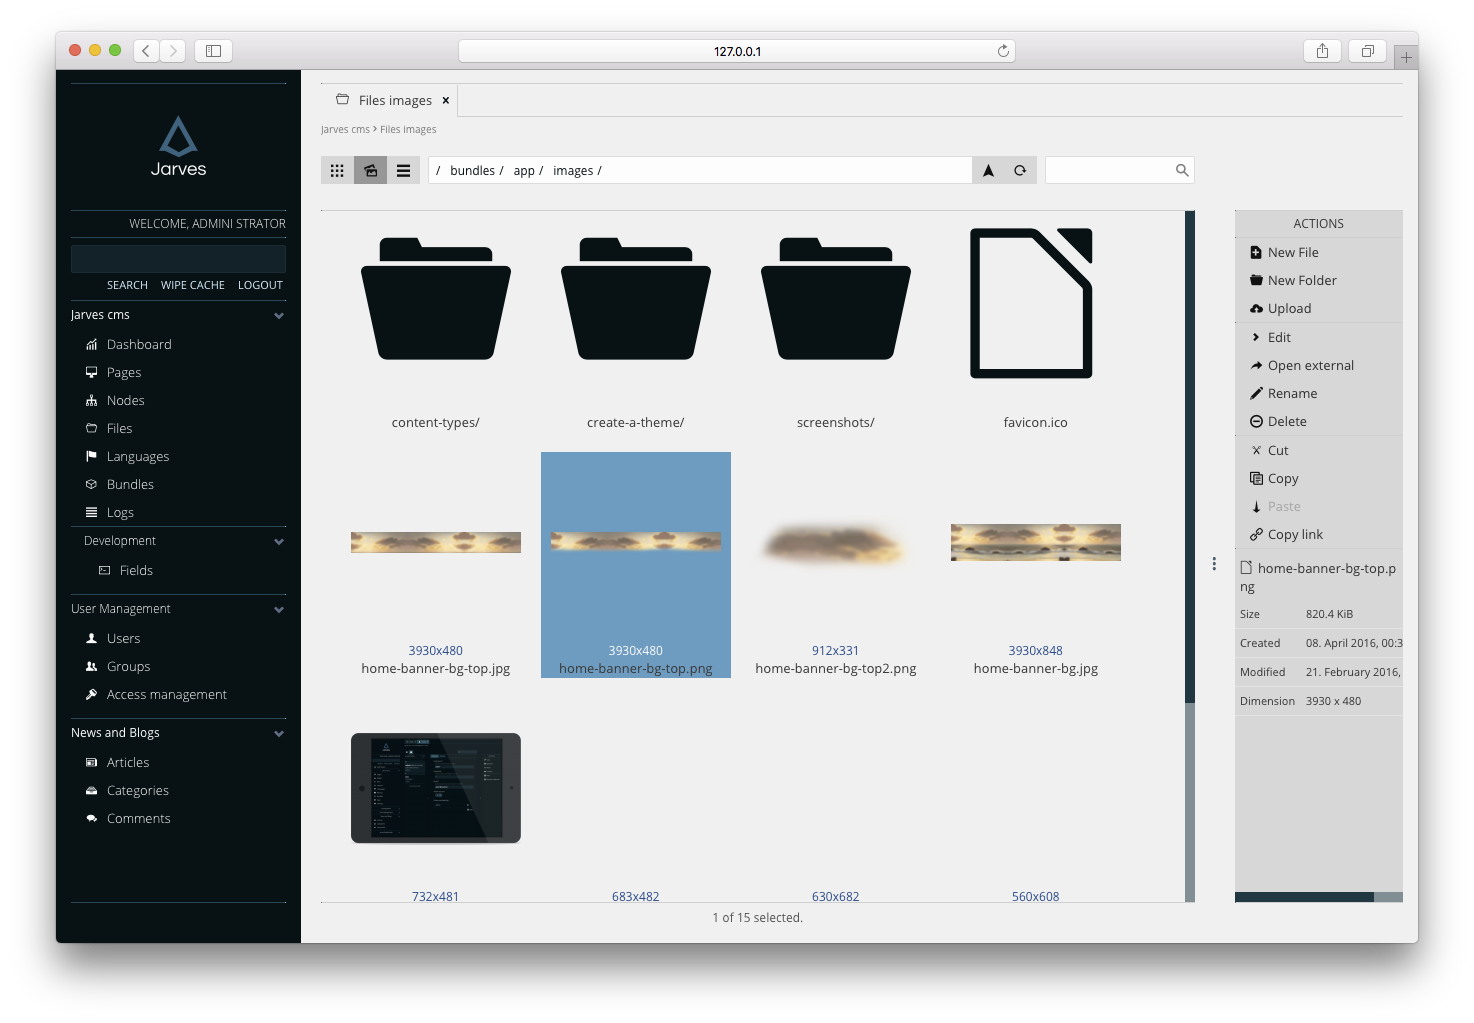 Administration File manager Images